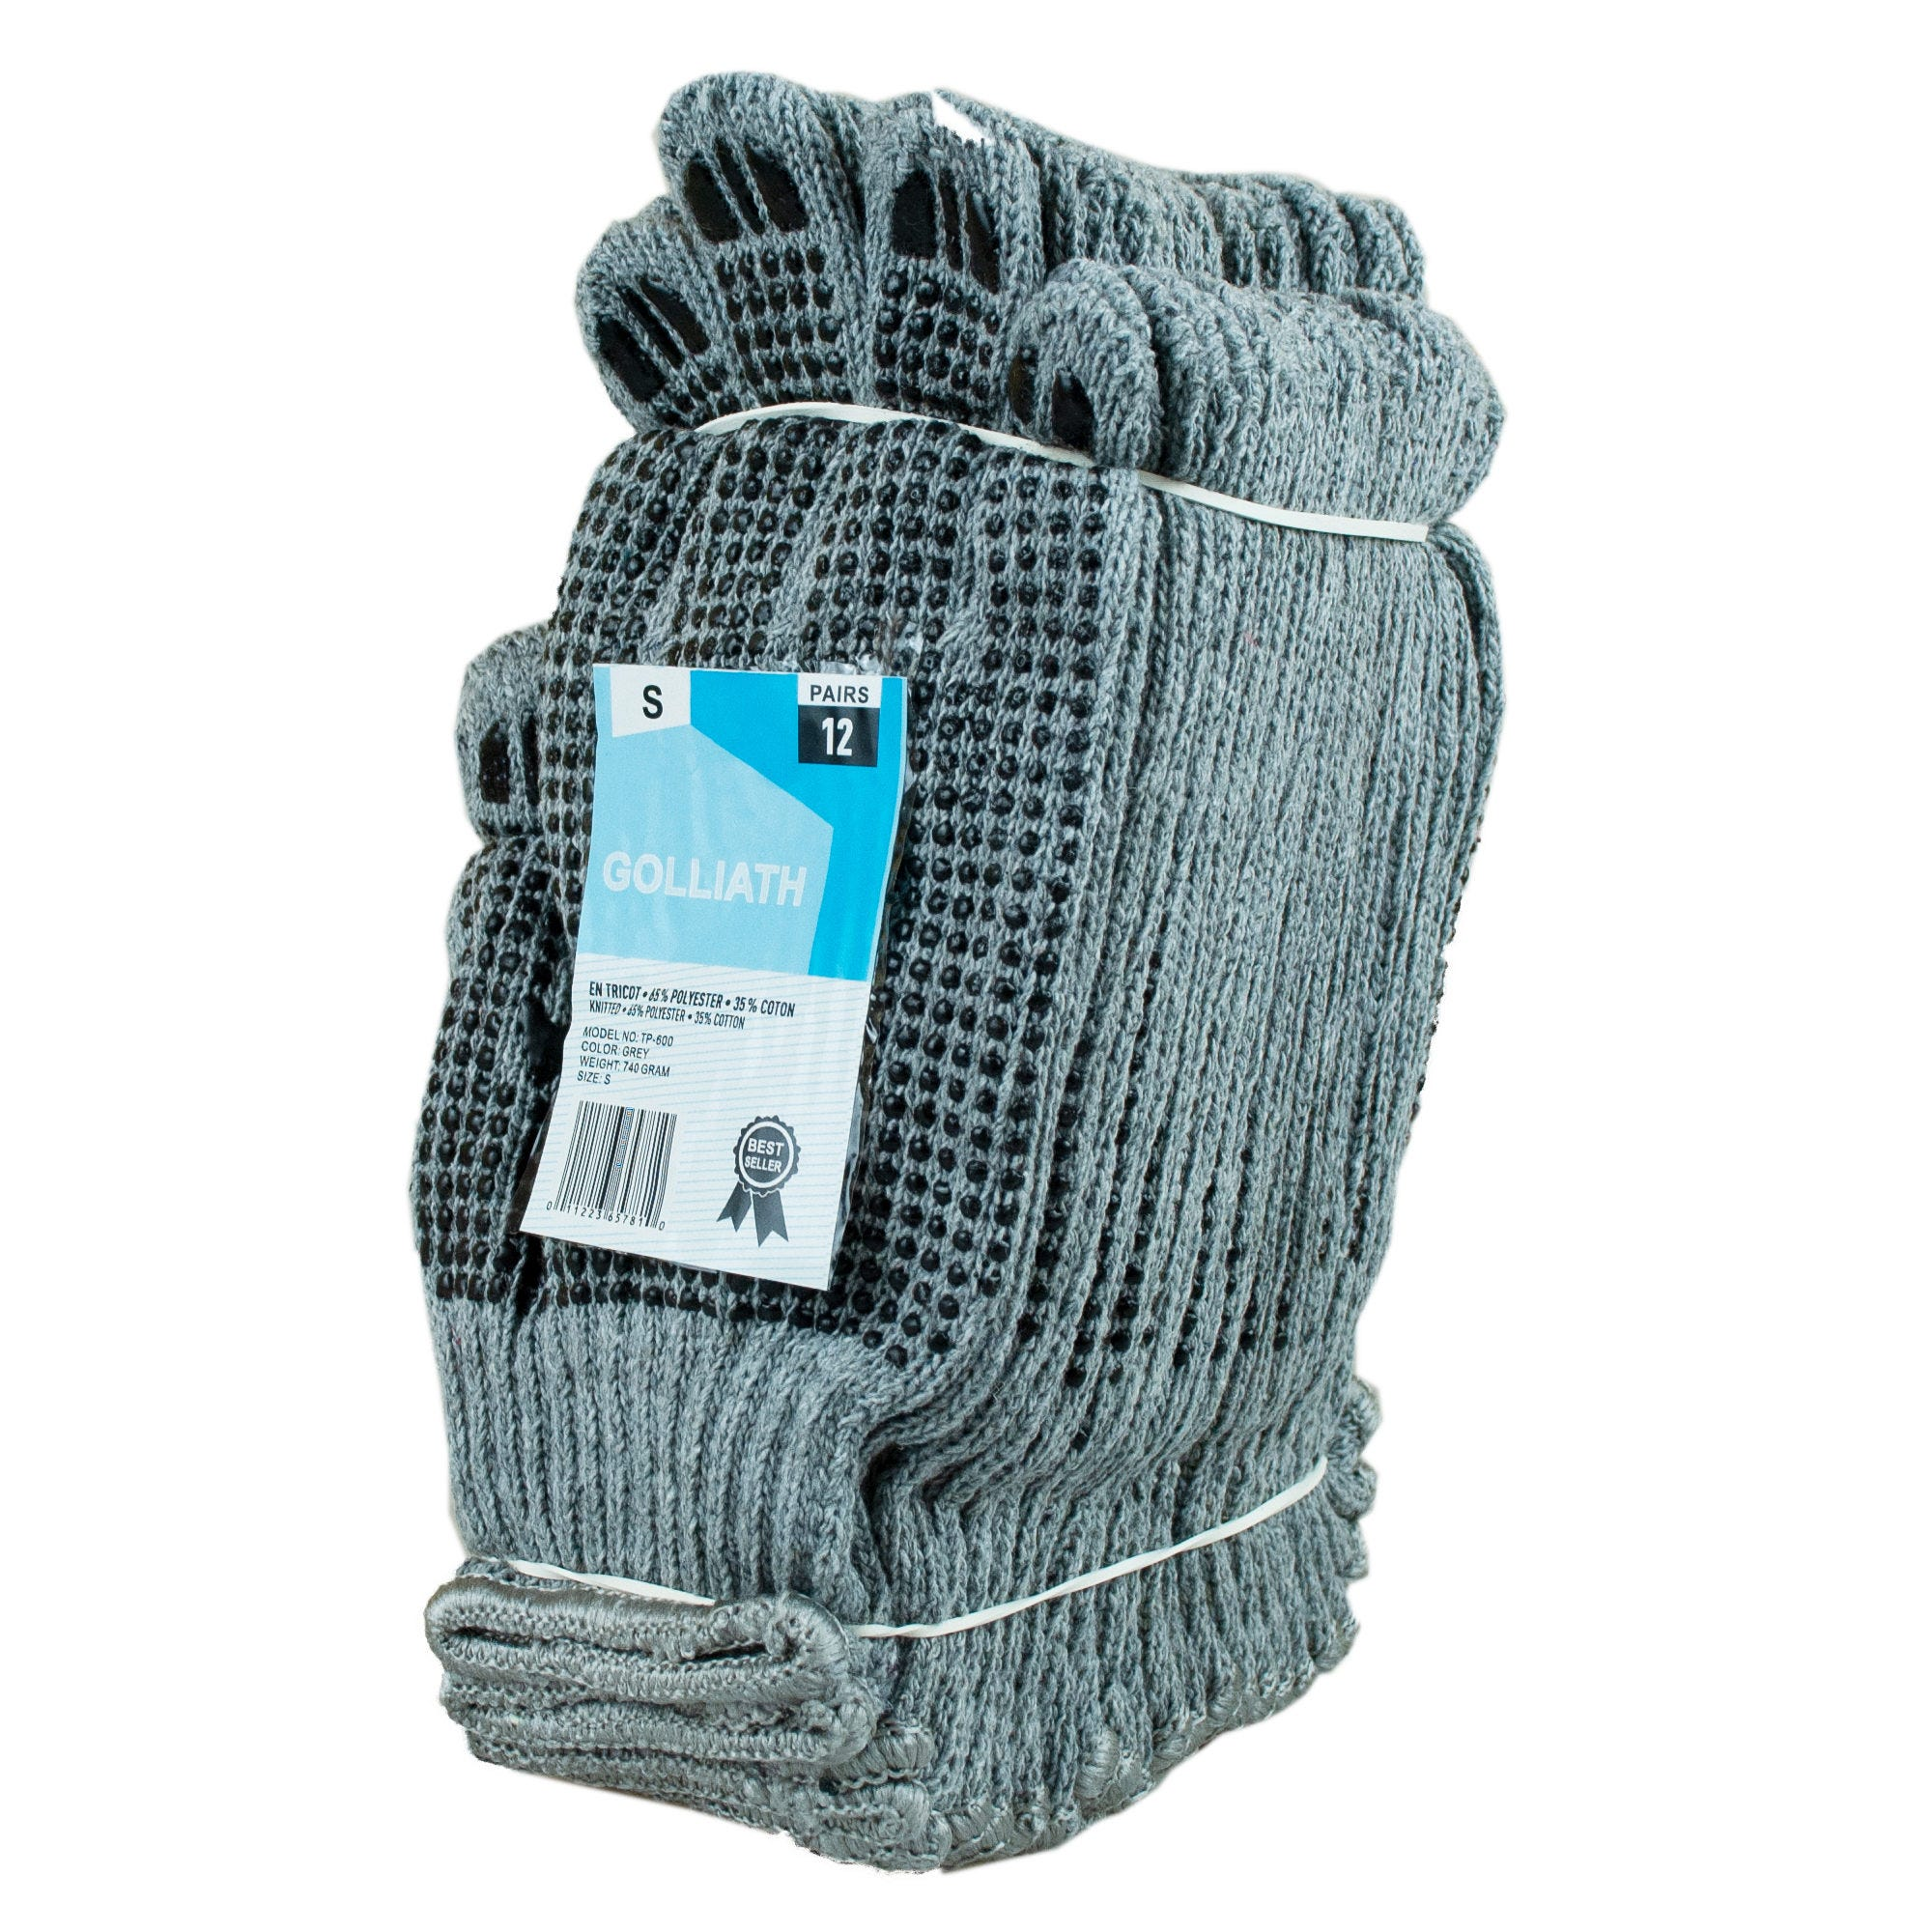 Value Pack 12 Pair Grey Work Gloves with Grip Dots Small